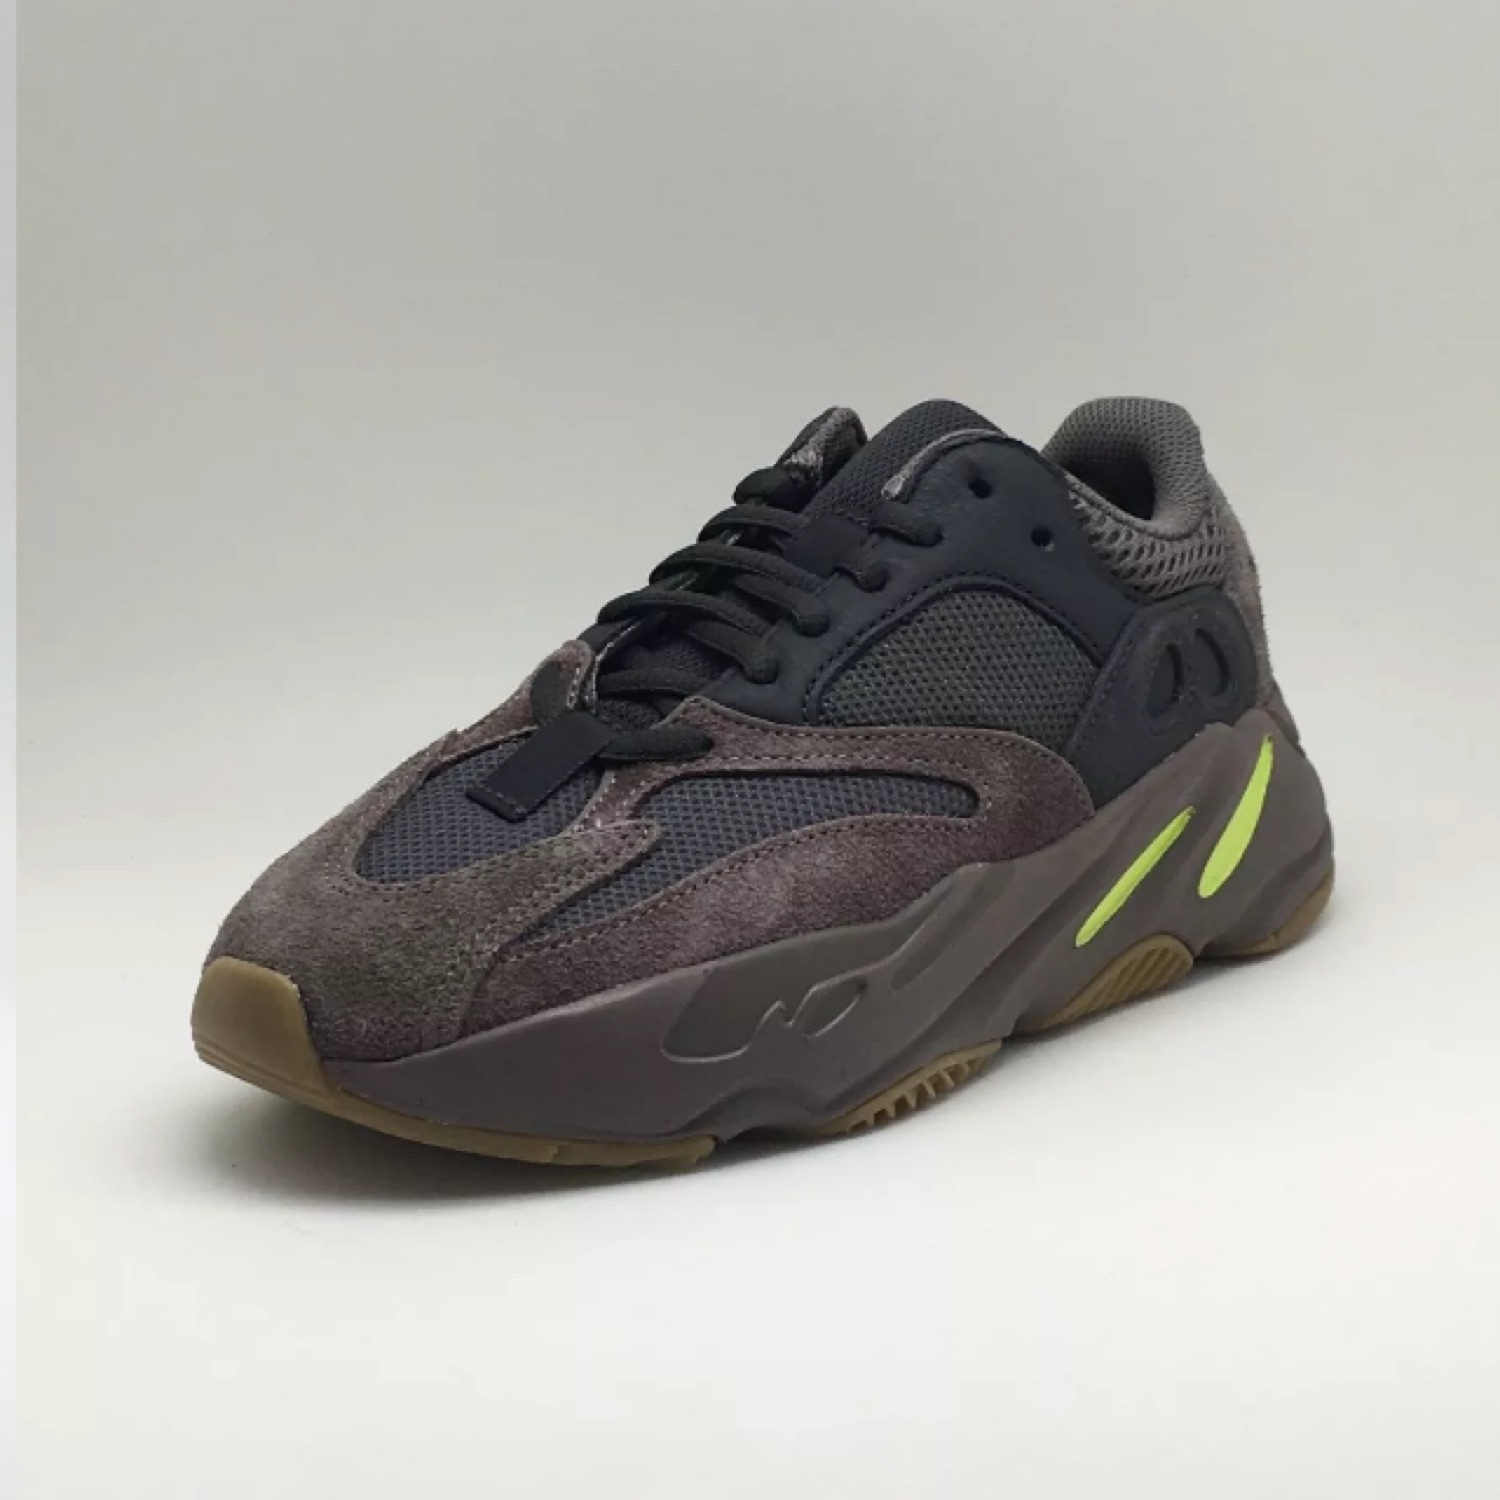 premium selection b4633 99259 Adidas Yeezy Boost 700 Wave Runner Mauve